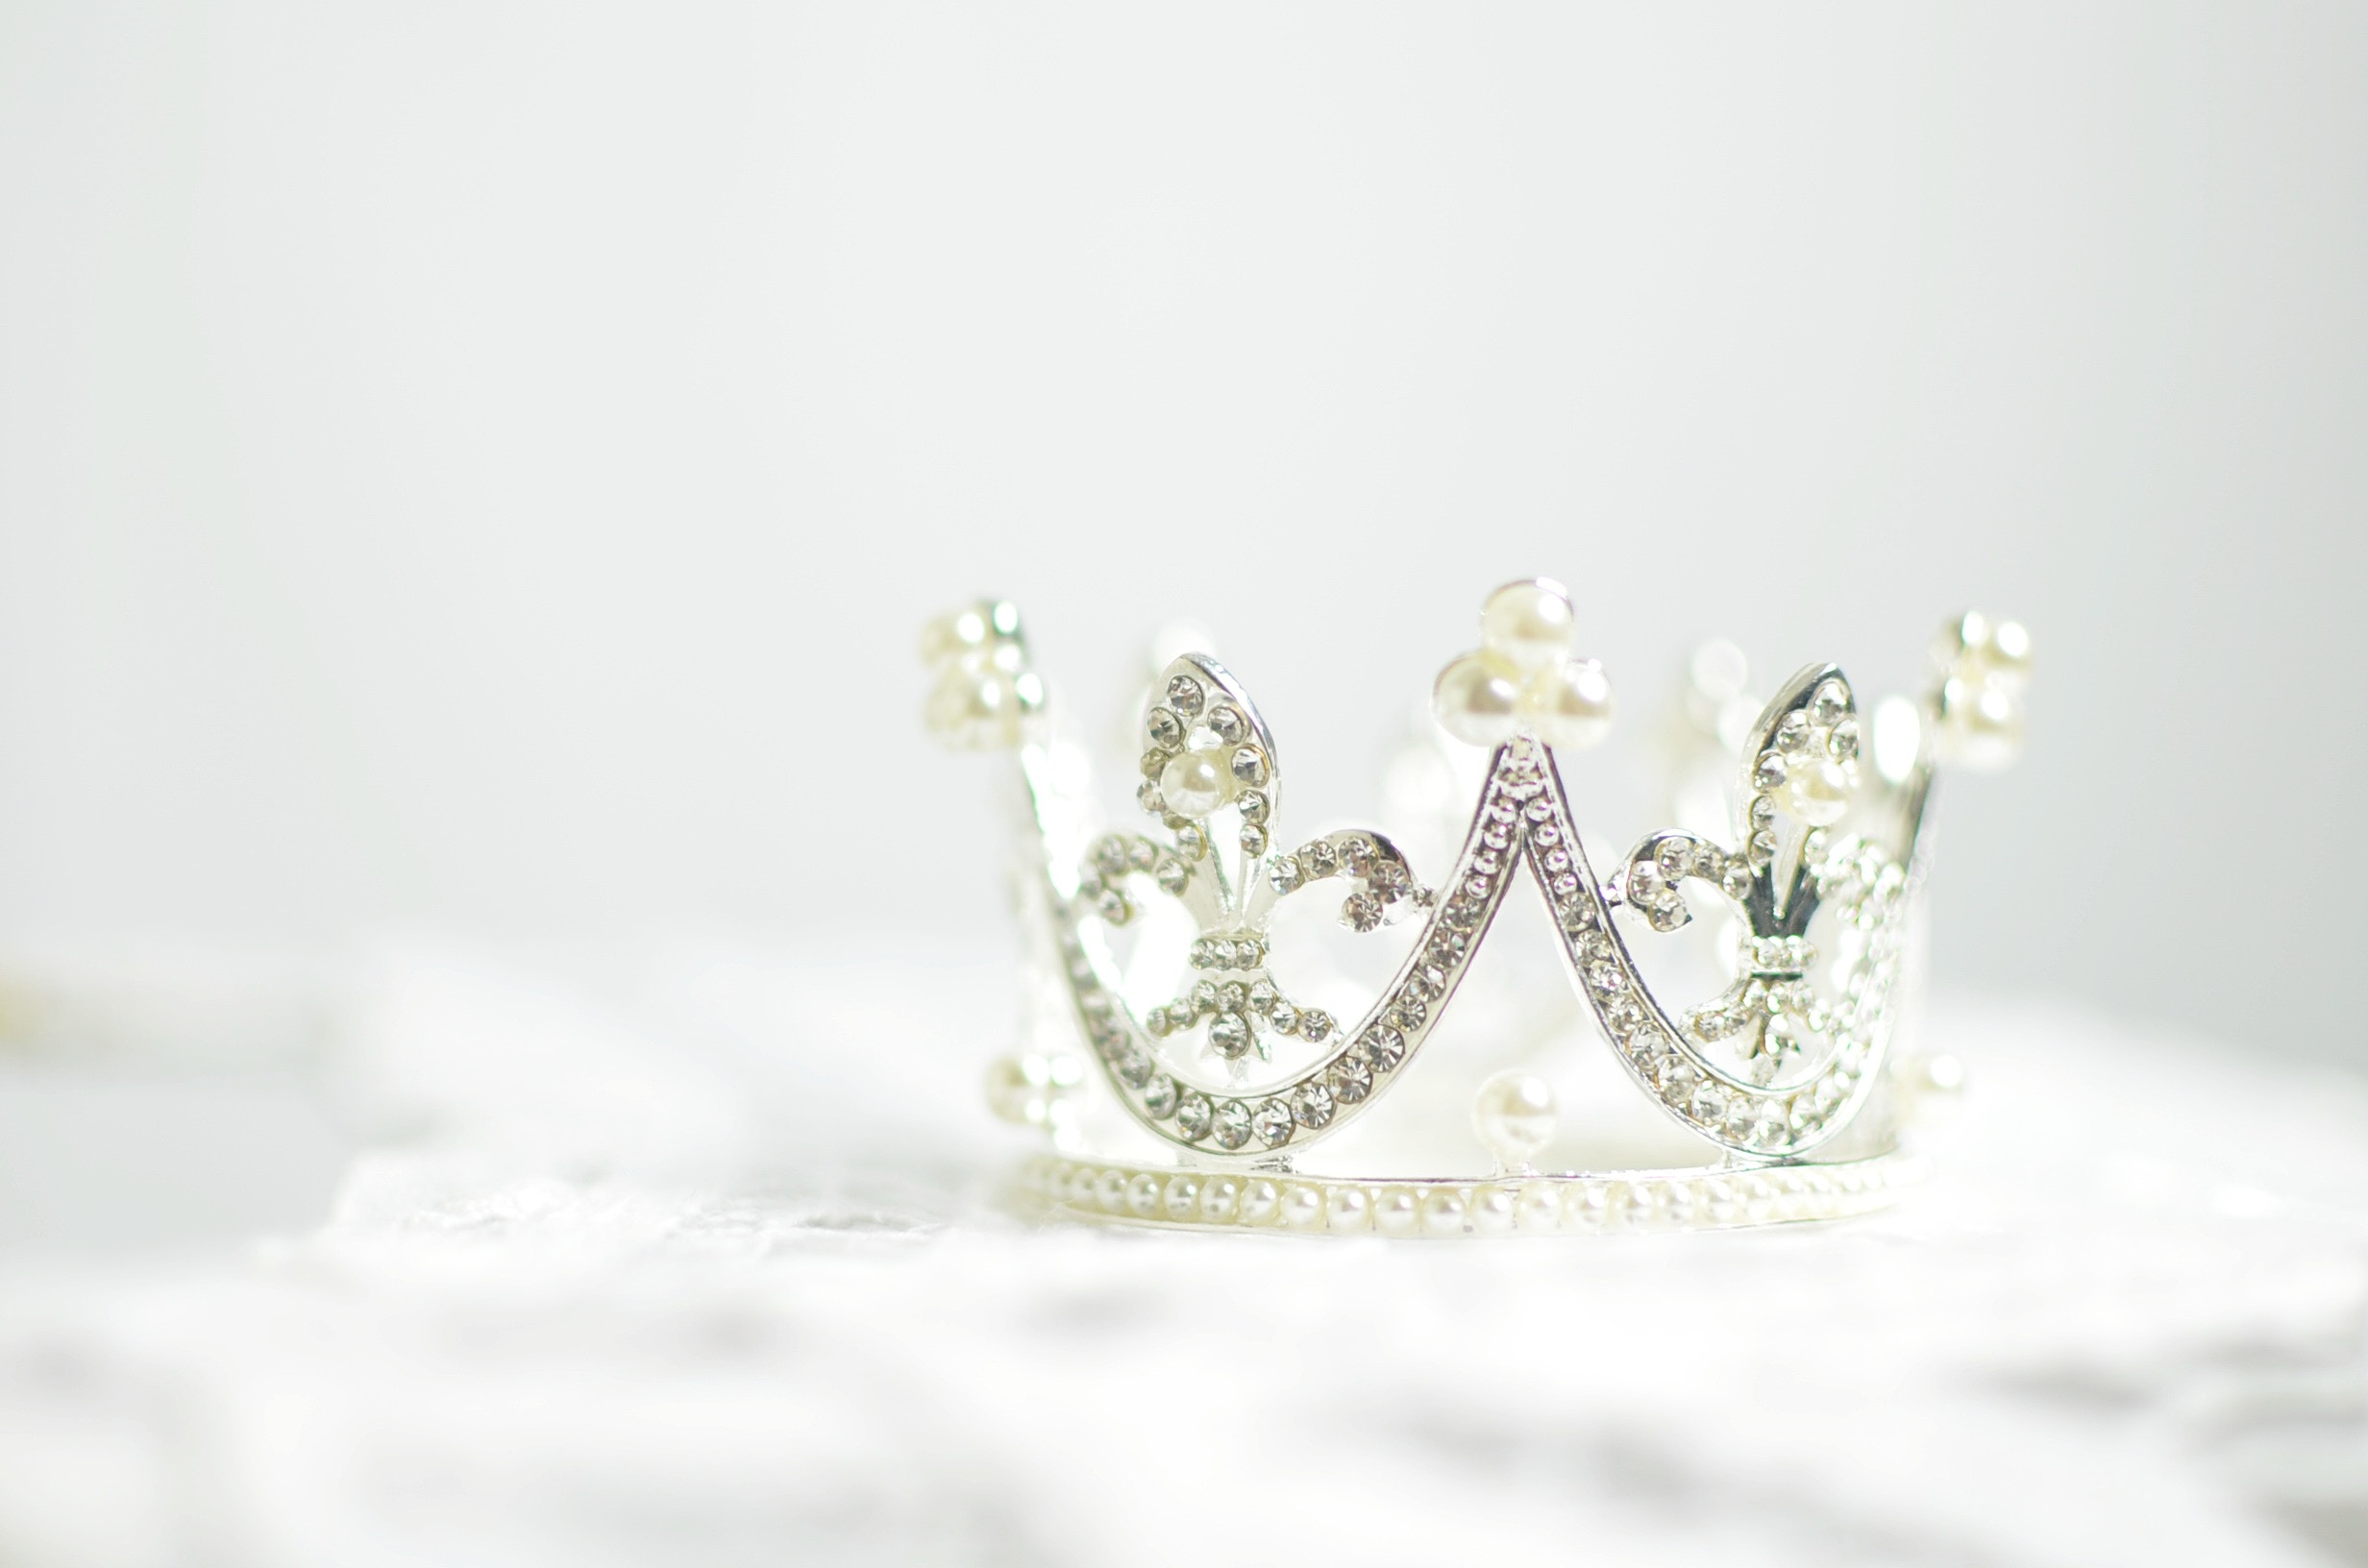 Princess syndrome: put a stop to this sexist behaviour